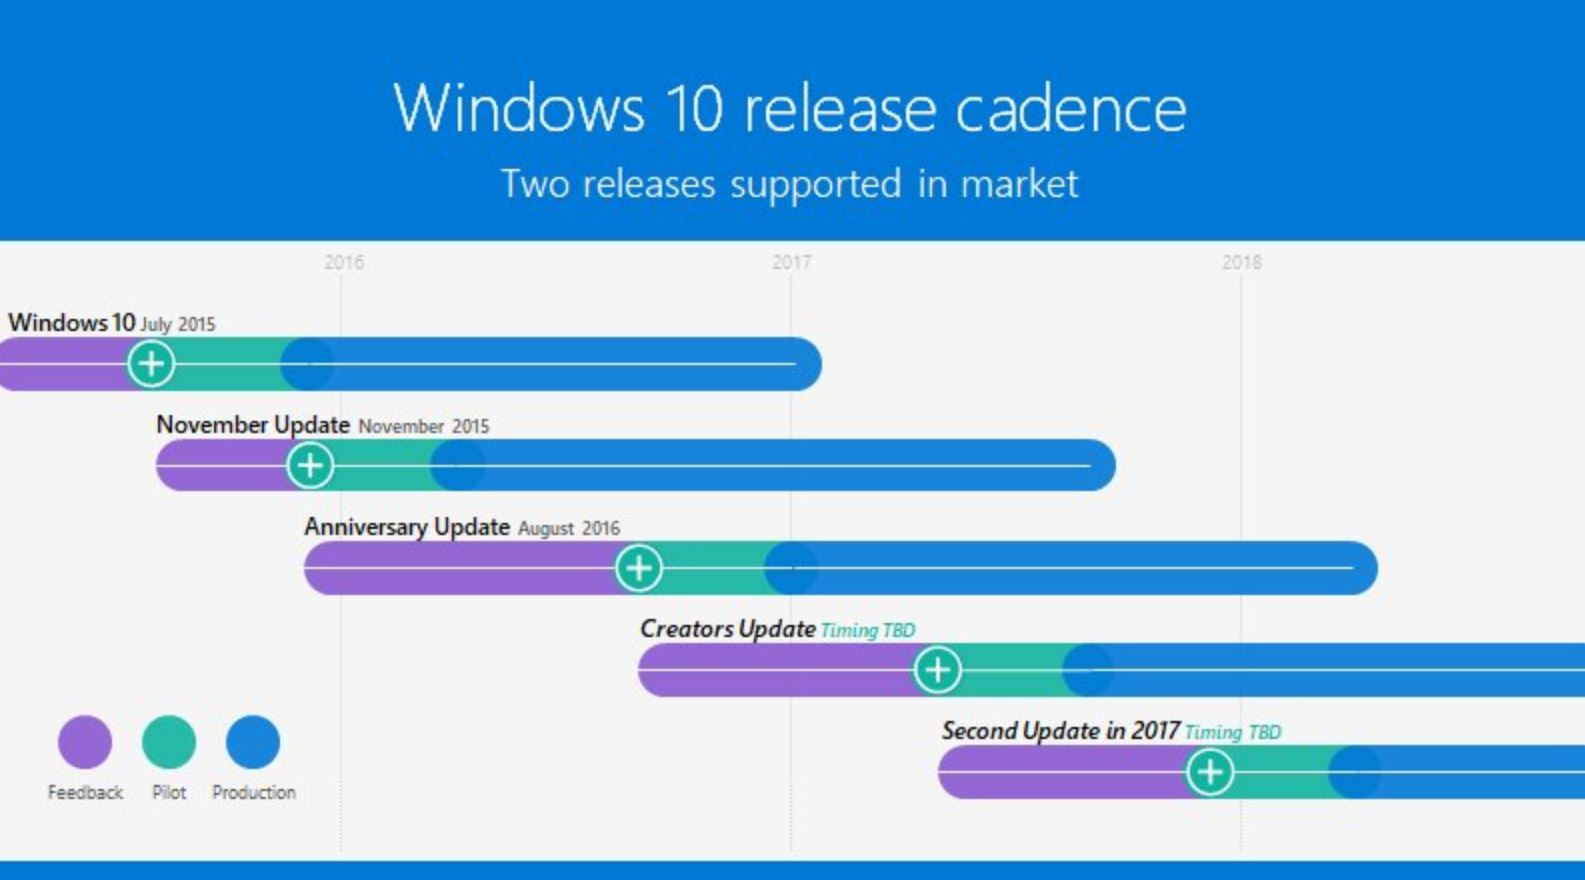 Microsoft confirms second major update for Windows 10 later this year 1